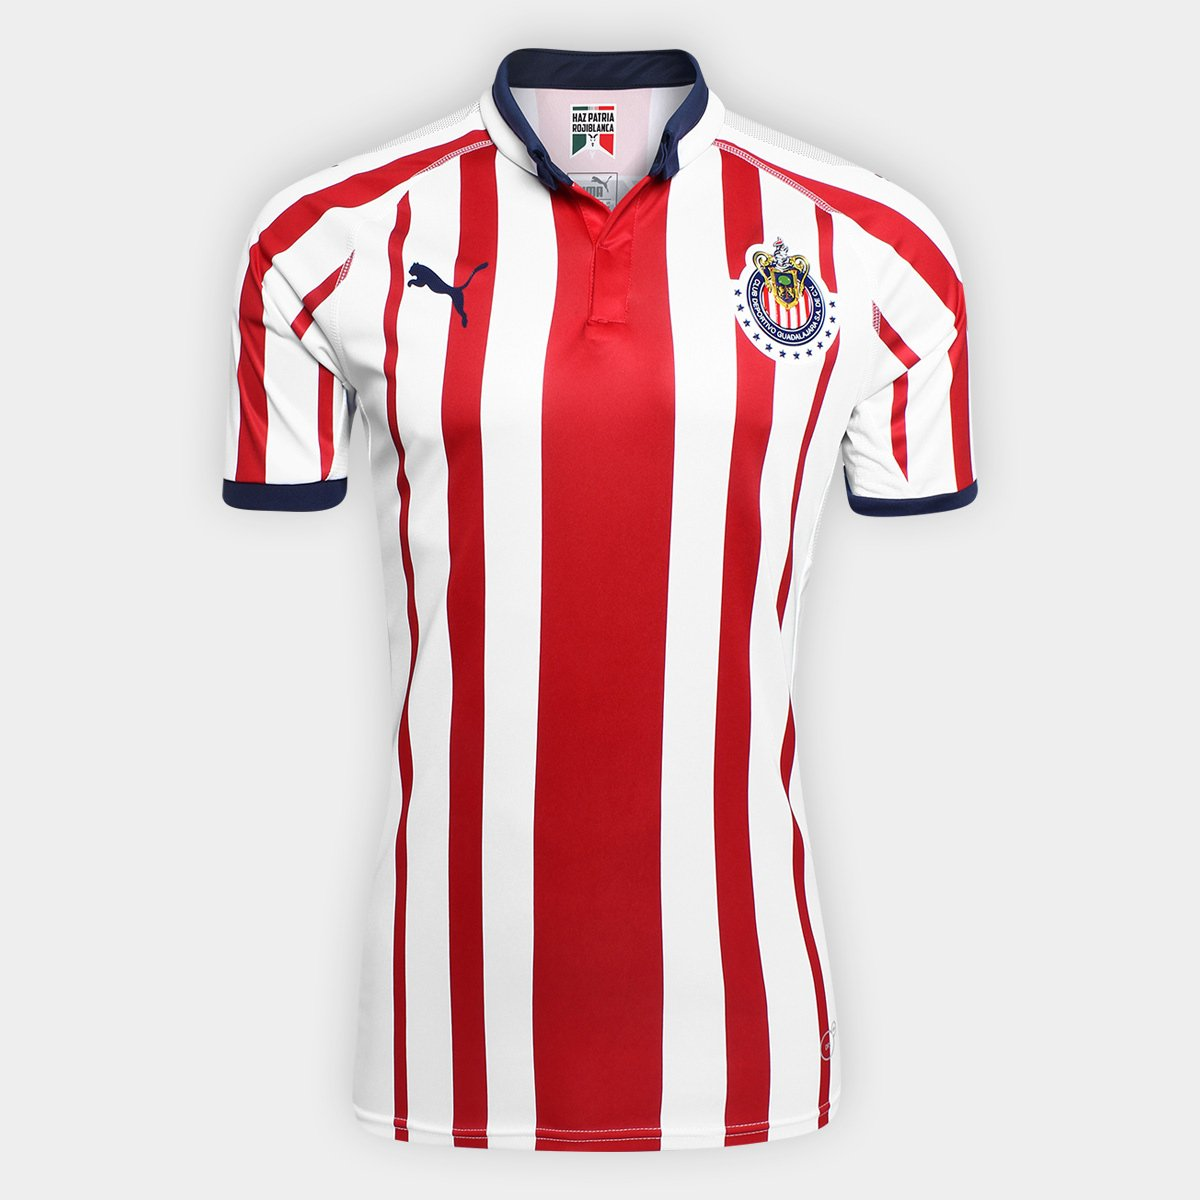 Playera chivas download free clip art with a transparent.